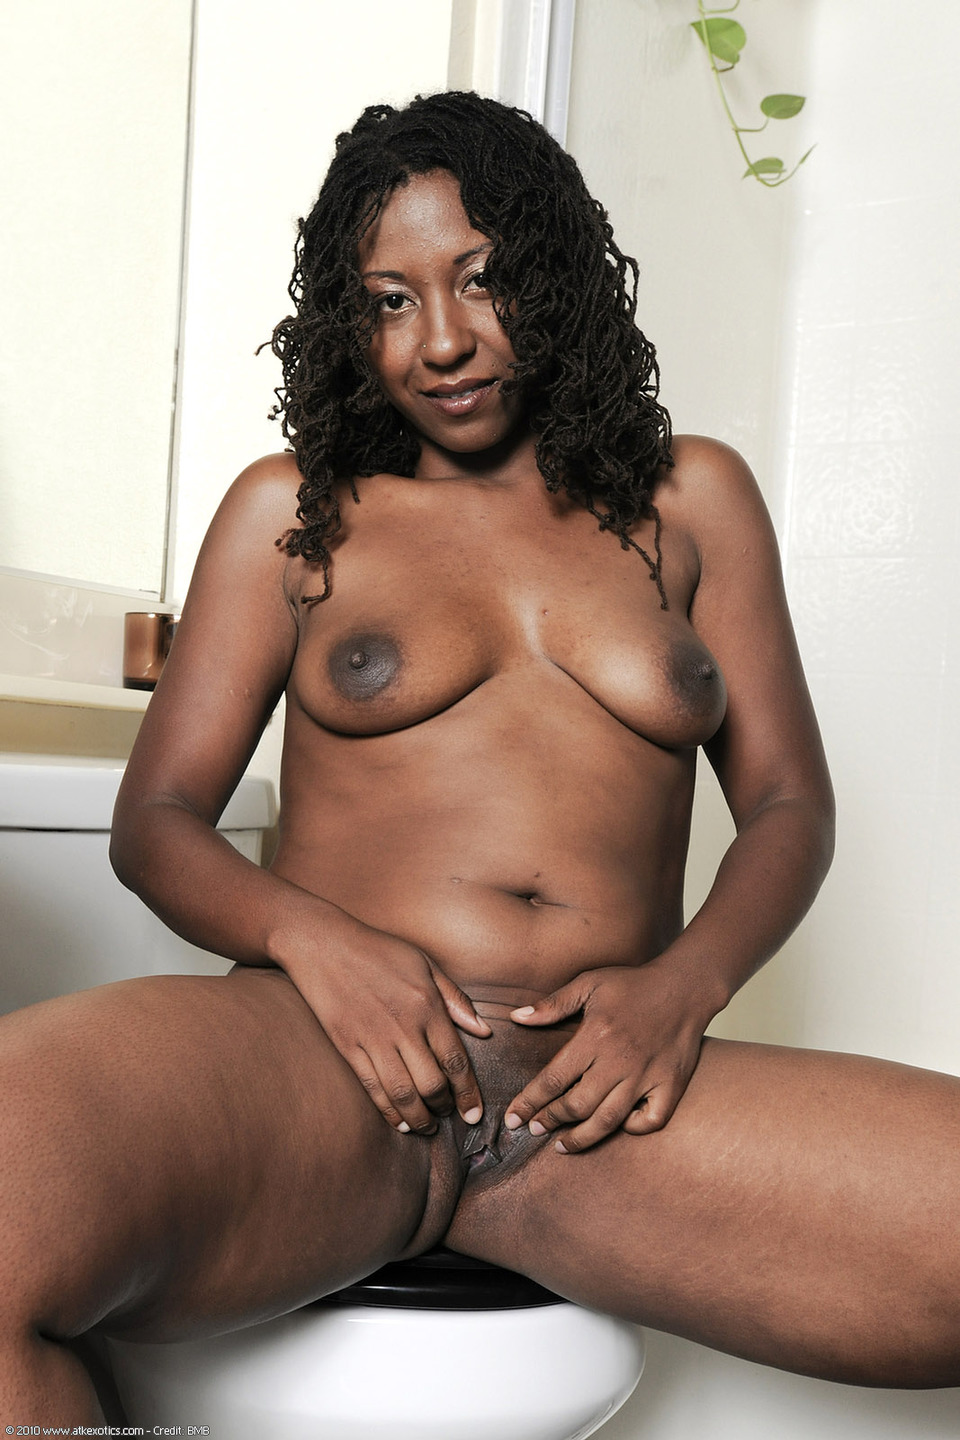 nude ebony girls spread